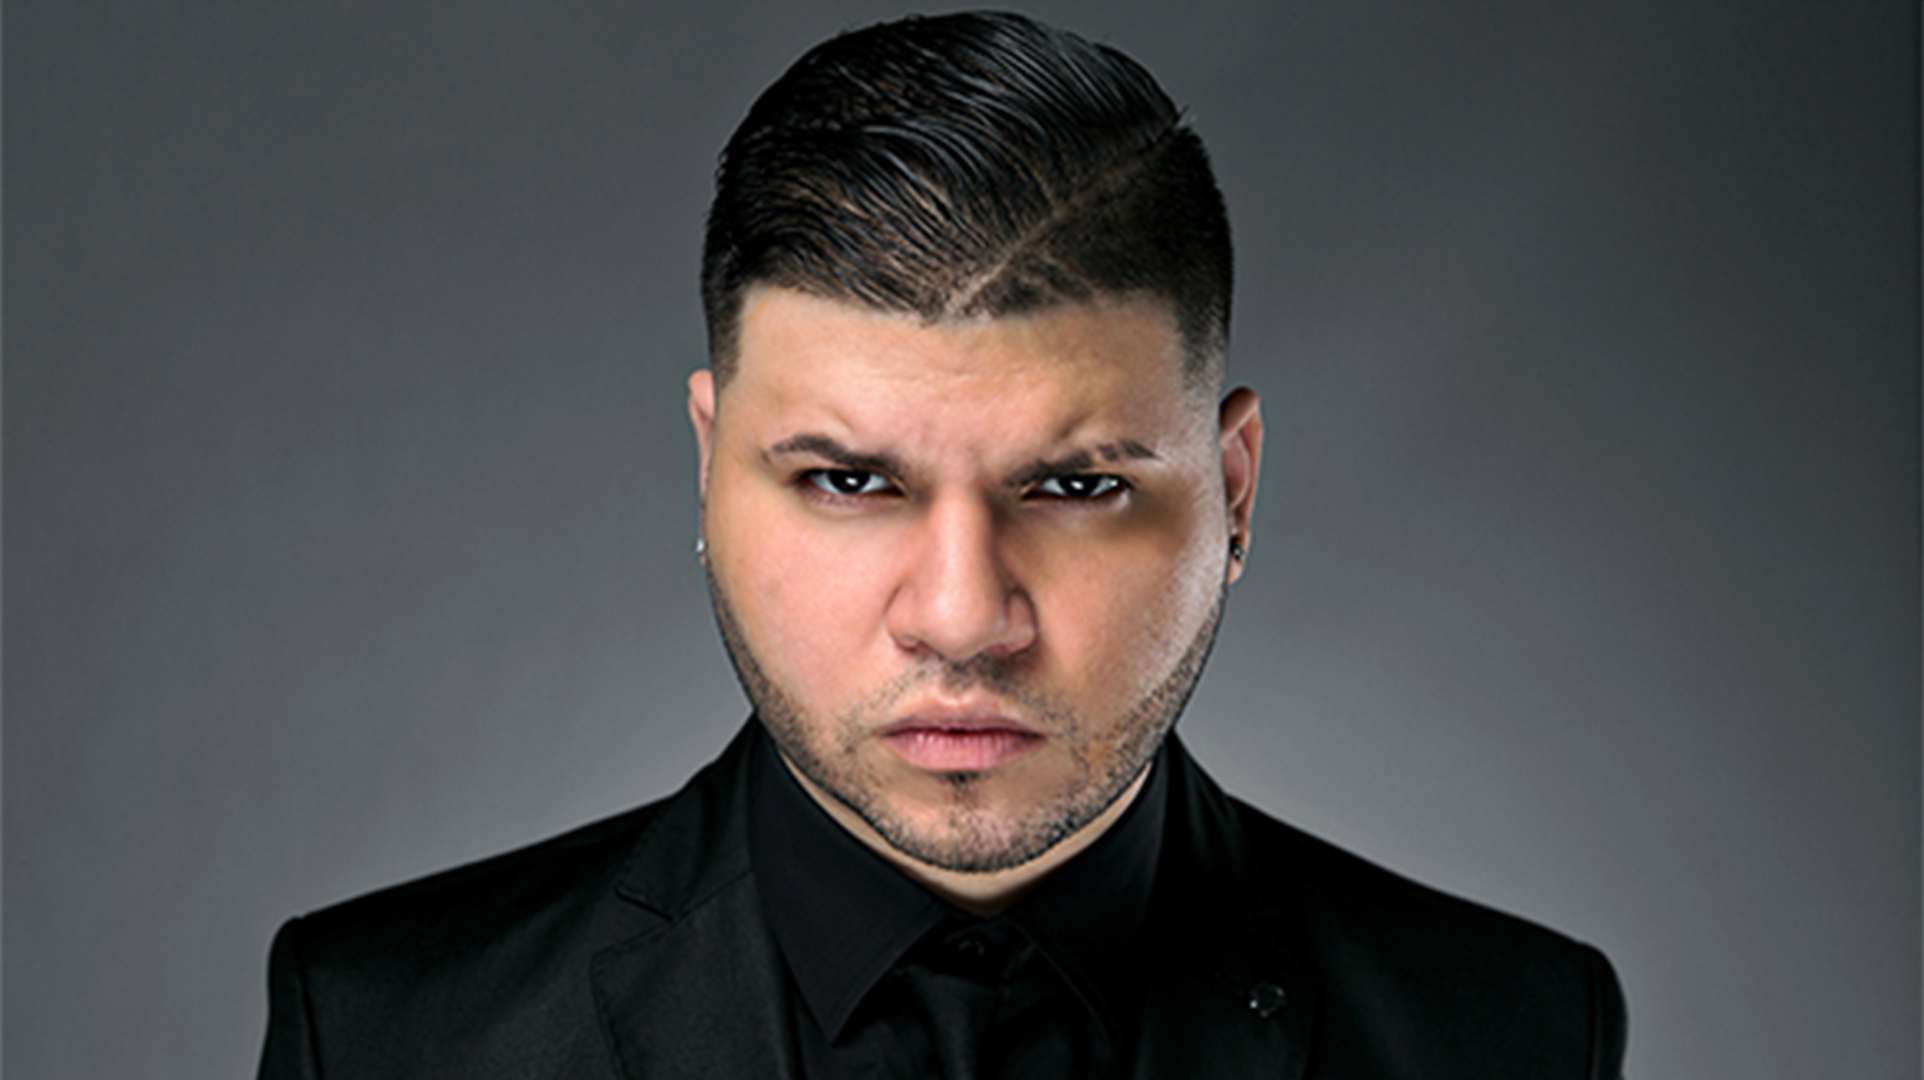 Carlos Efrén Reyes Rosado, better known by his stage name Farruko is ...